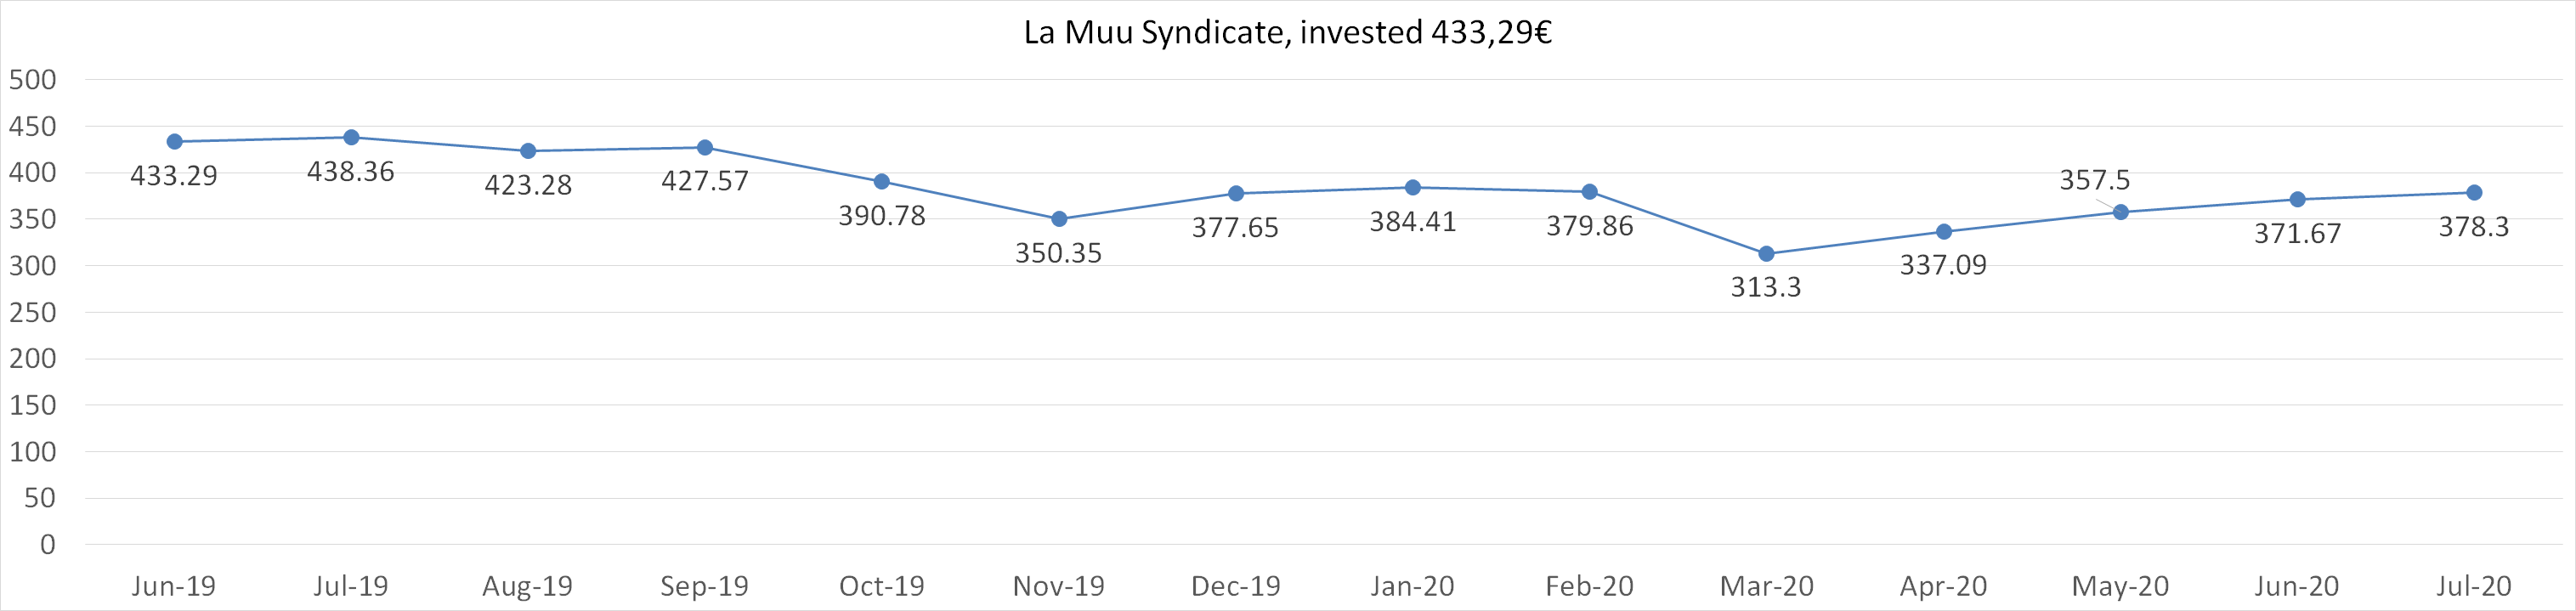 La Muu Syndicate, invested 433,29 euros in july 2020